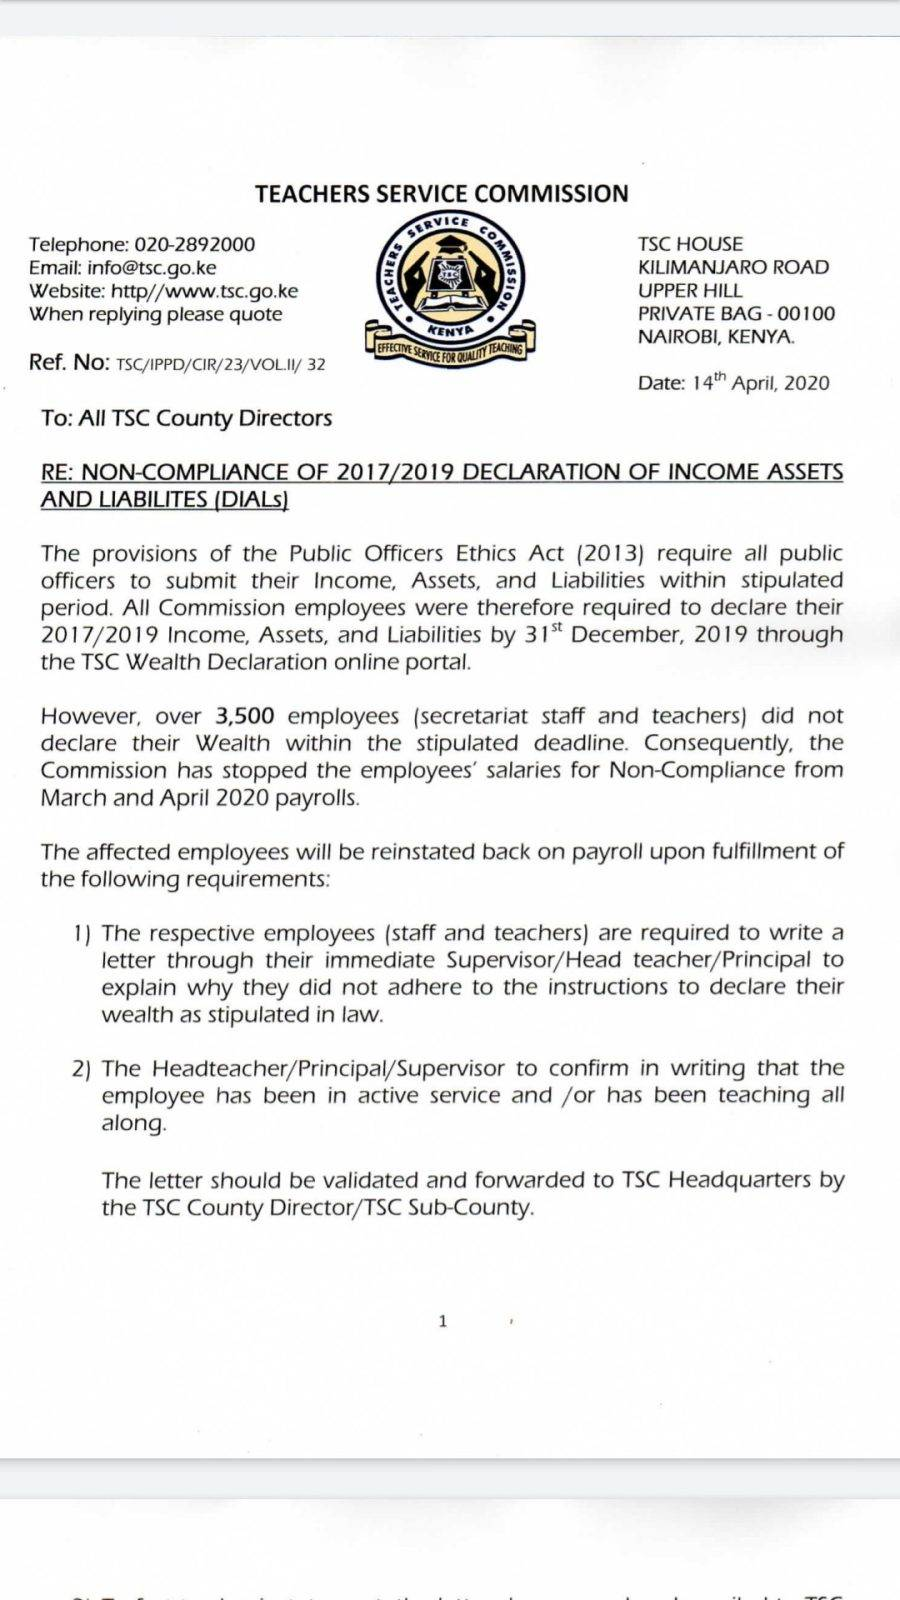 TSC Circular on expunging over 3,500 teachers and staff from the payroll for failing to declare their 2017/ 2019 wealth.